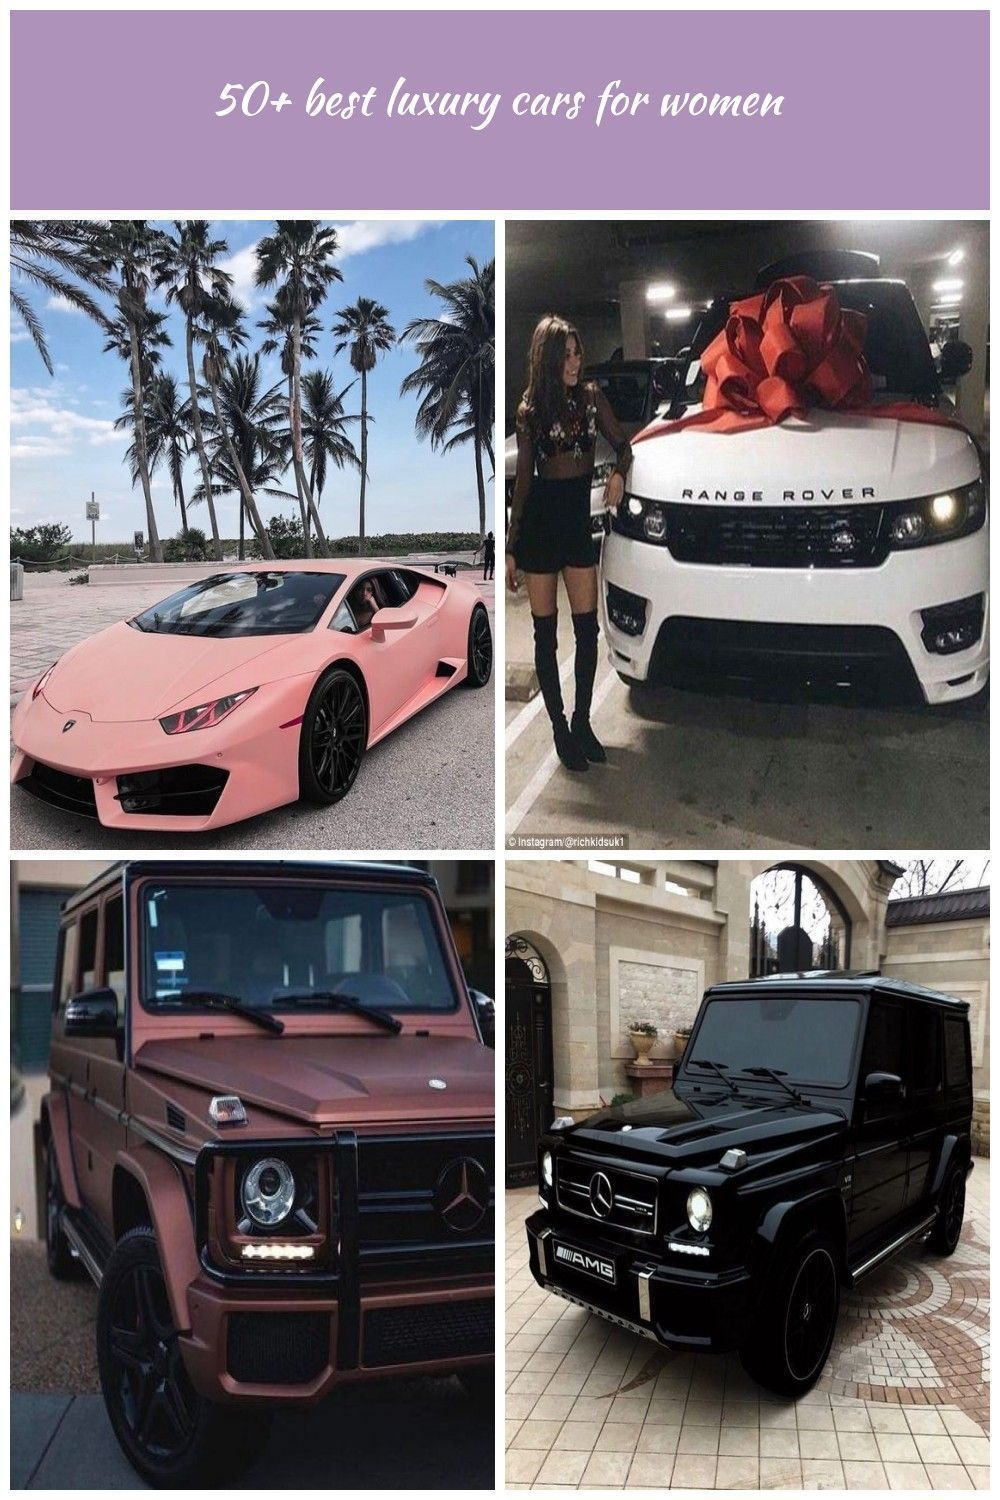 Photo of luxury cars For Women Top Luxury Cars Women Are Most Attracted To #topluxurycars… – #attracted #Cars #luxury #TOP #topluxurycars #women #topluxurycars